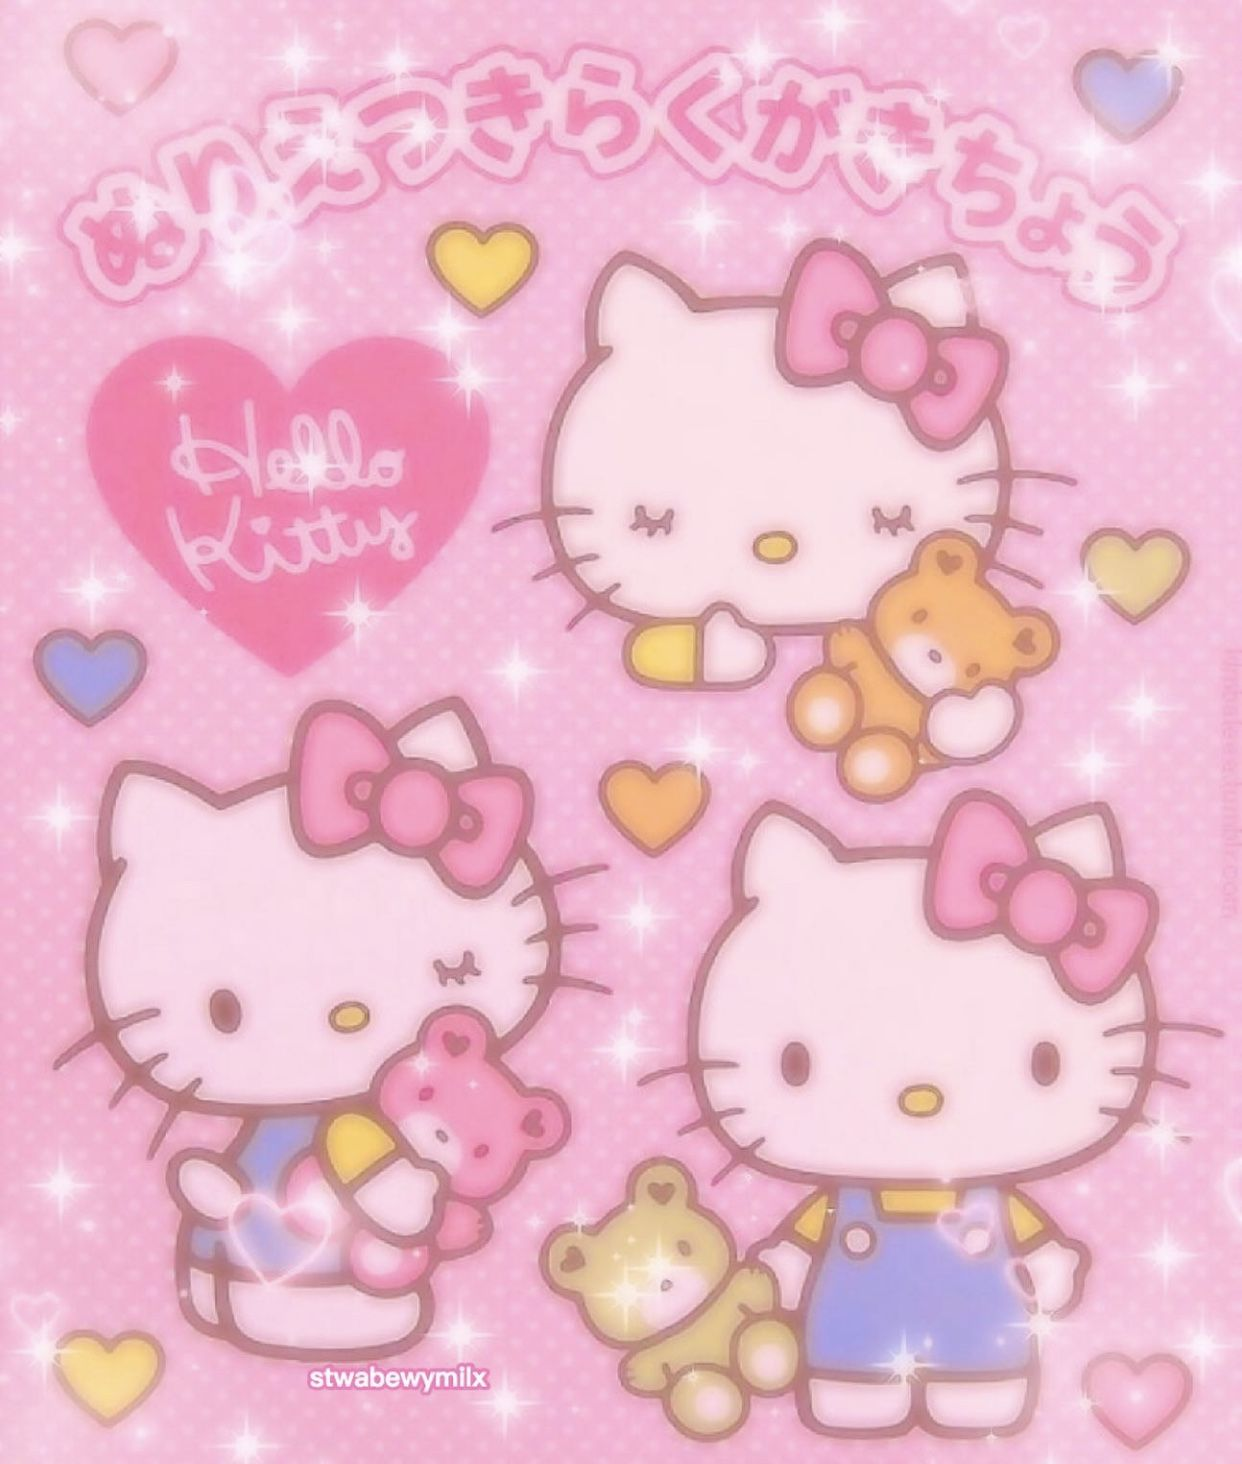 Pin By Soko 0660 On Pretty In Pink In 2020 Hello Kitty My Melody Hello Kitty Wallpaper Sanrio Hello Kitty